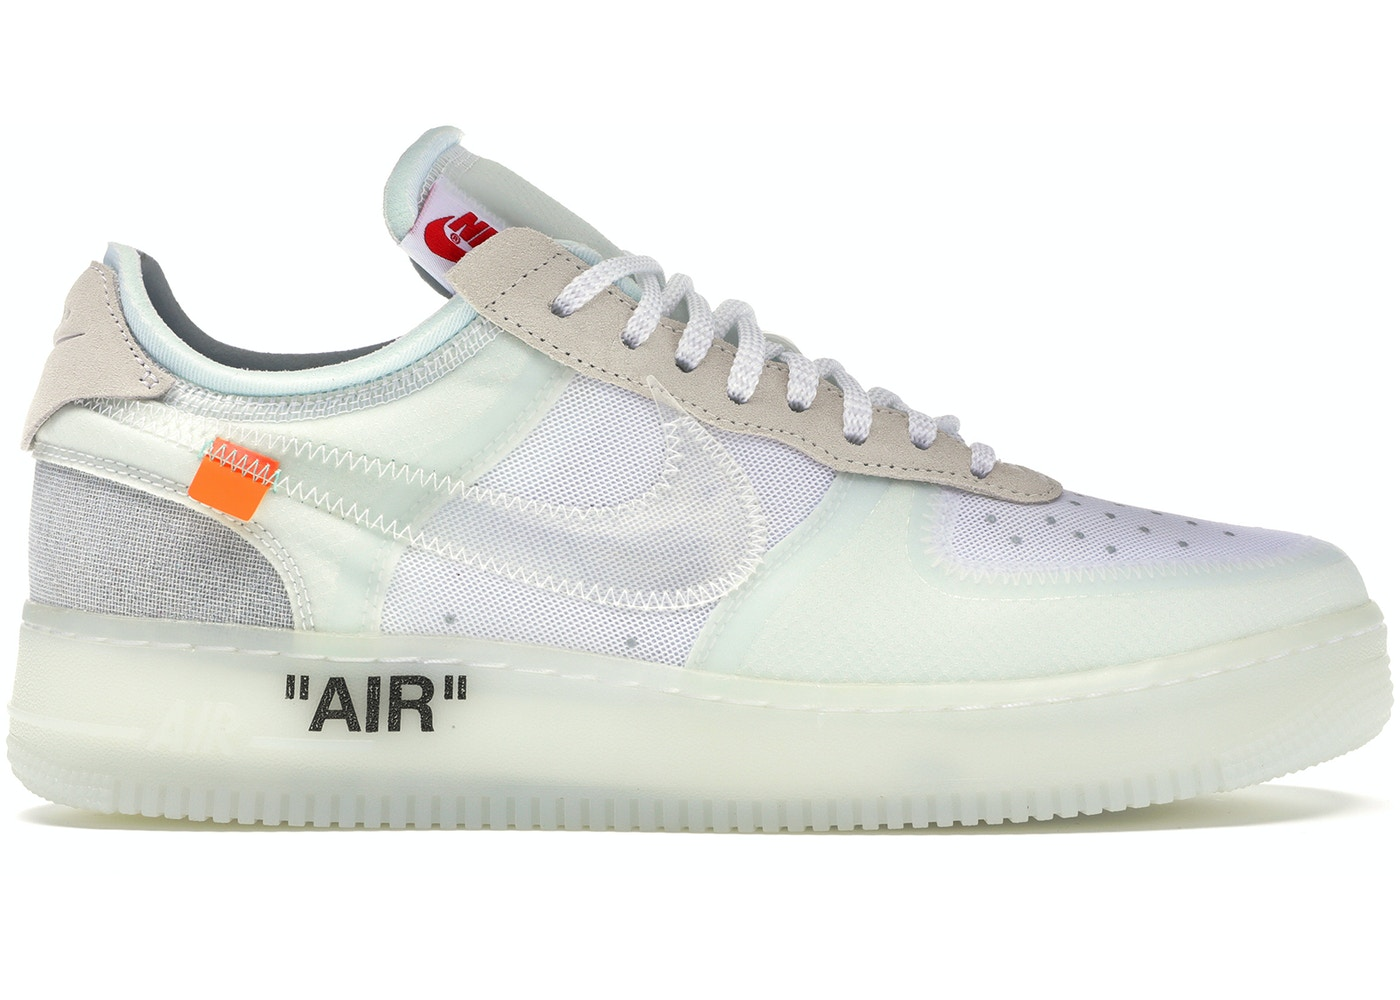 0fa862e147a95 Air Force 1 Low Off-White - AO4606-100